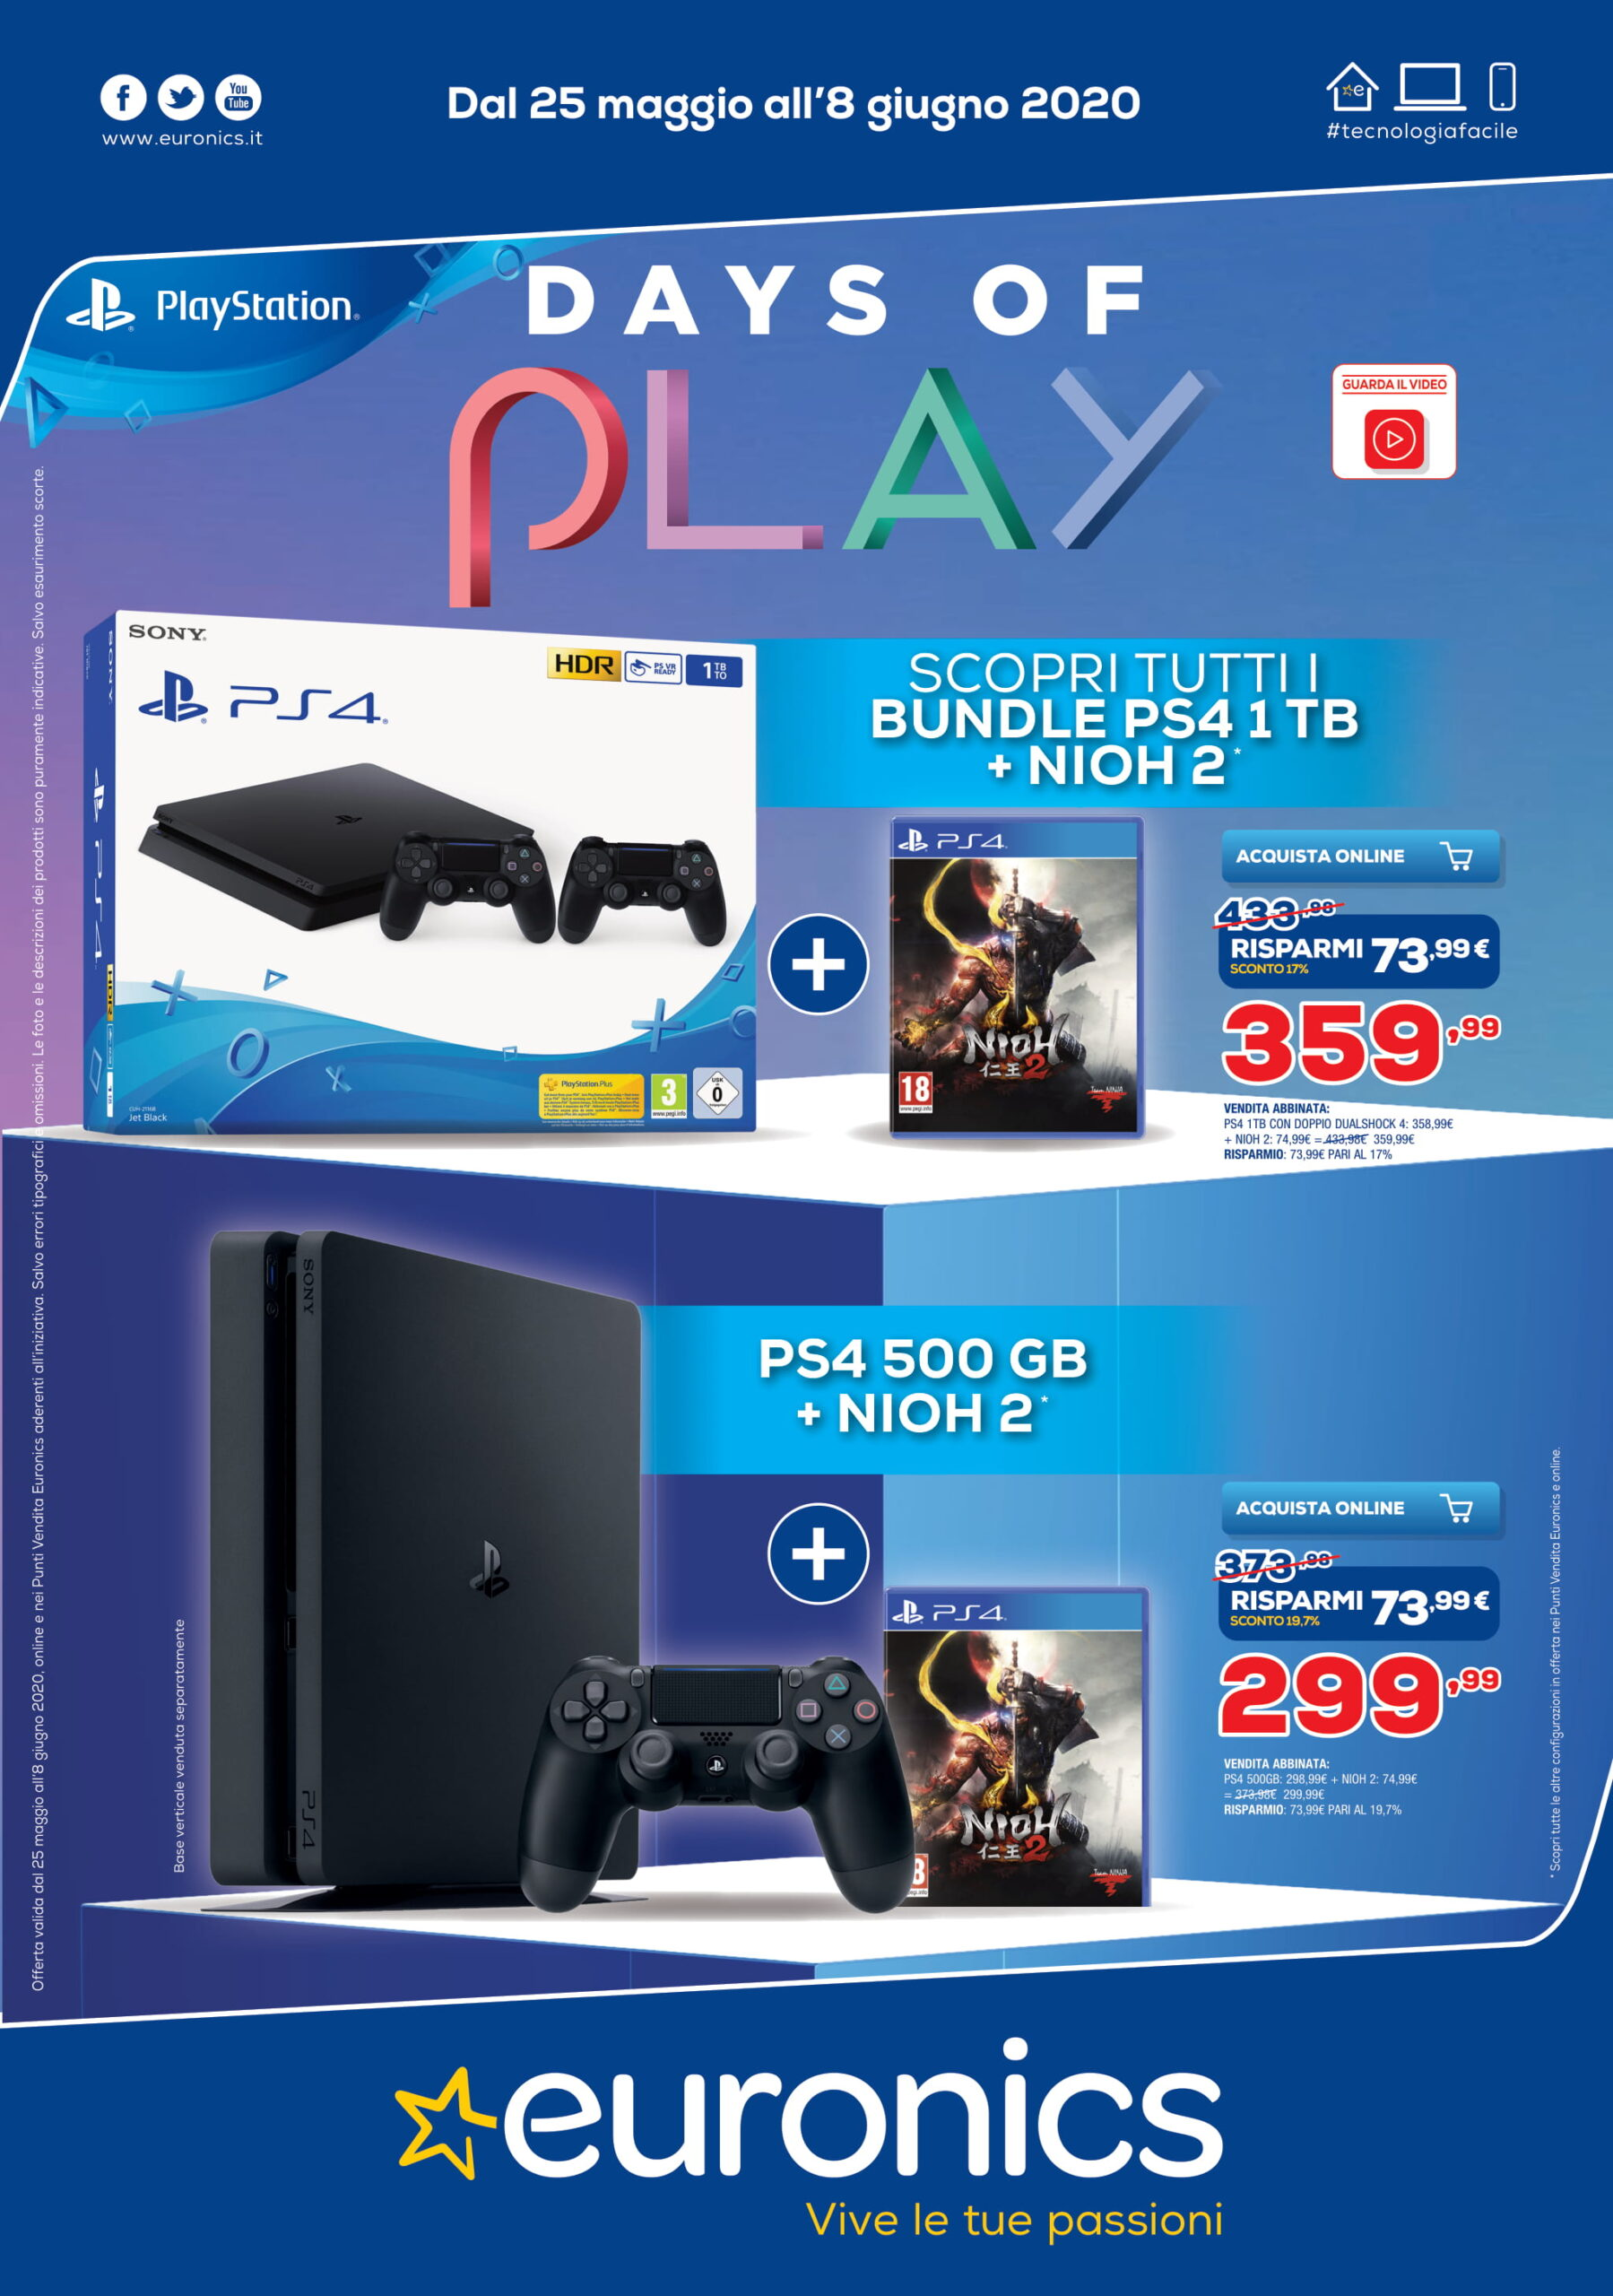 PlayStation Days of Play Euronics